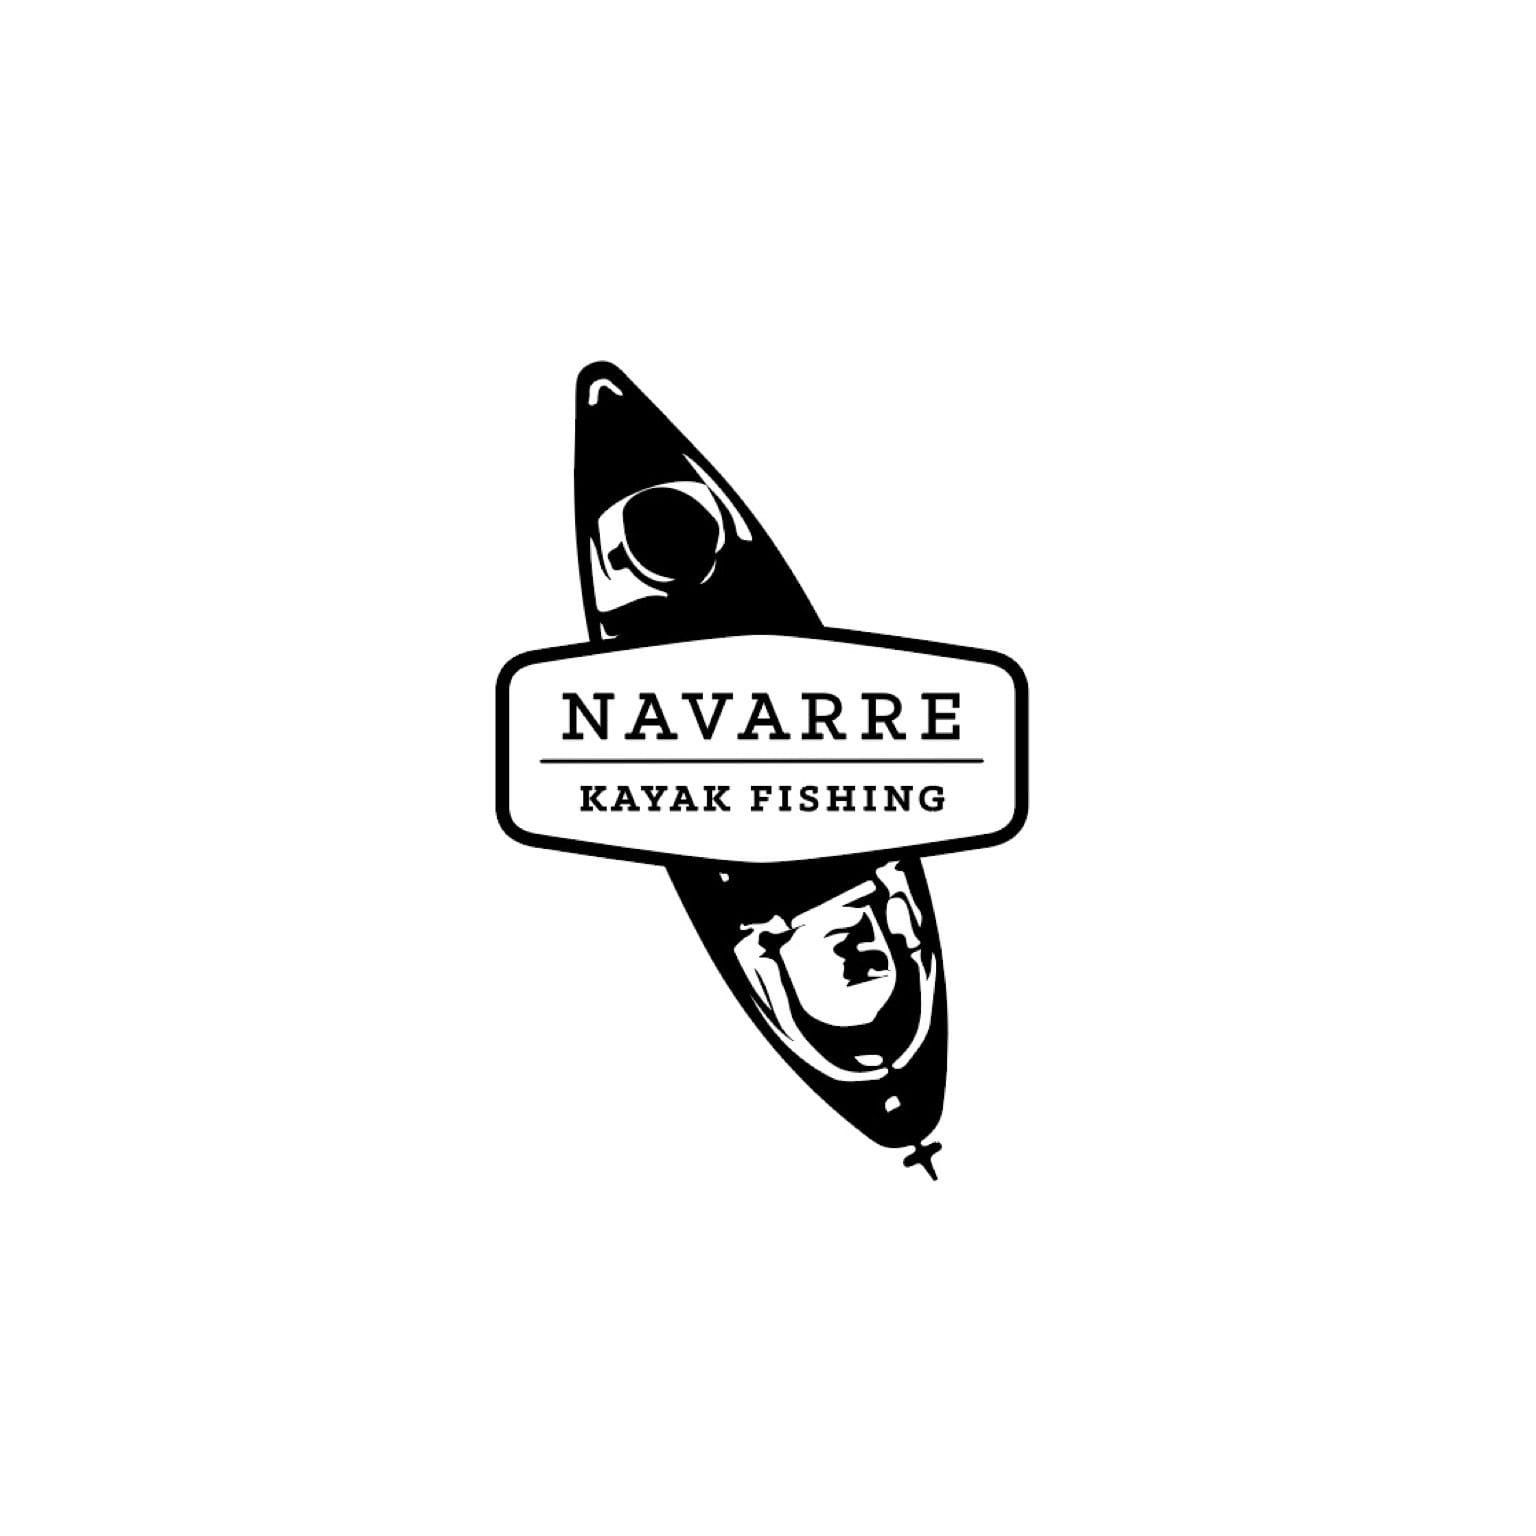 Navarre Kayak Fishing Decals